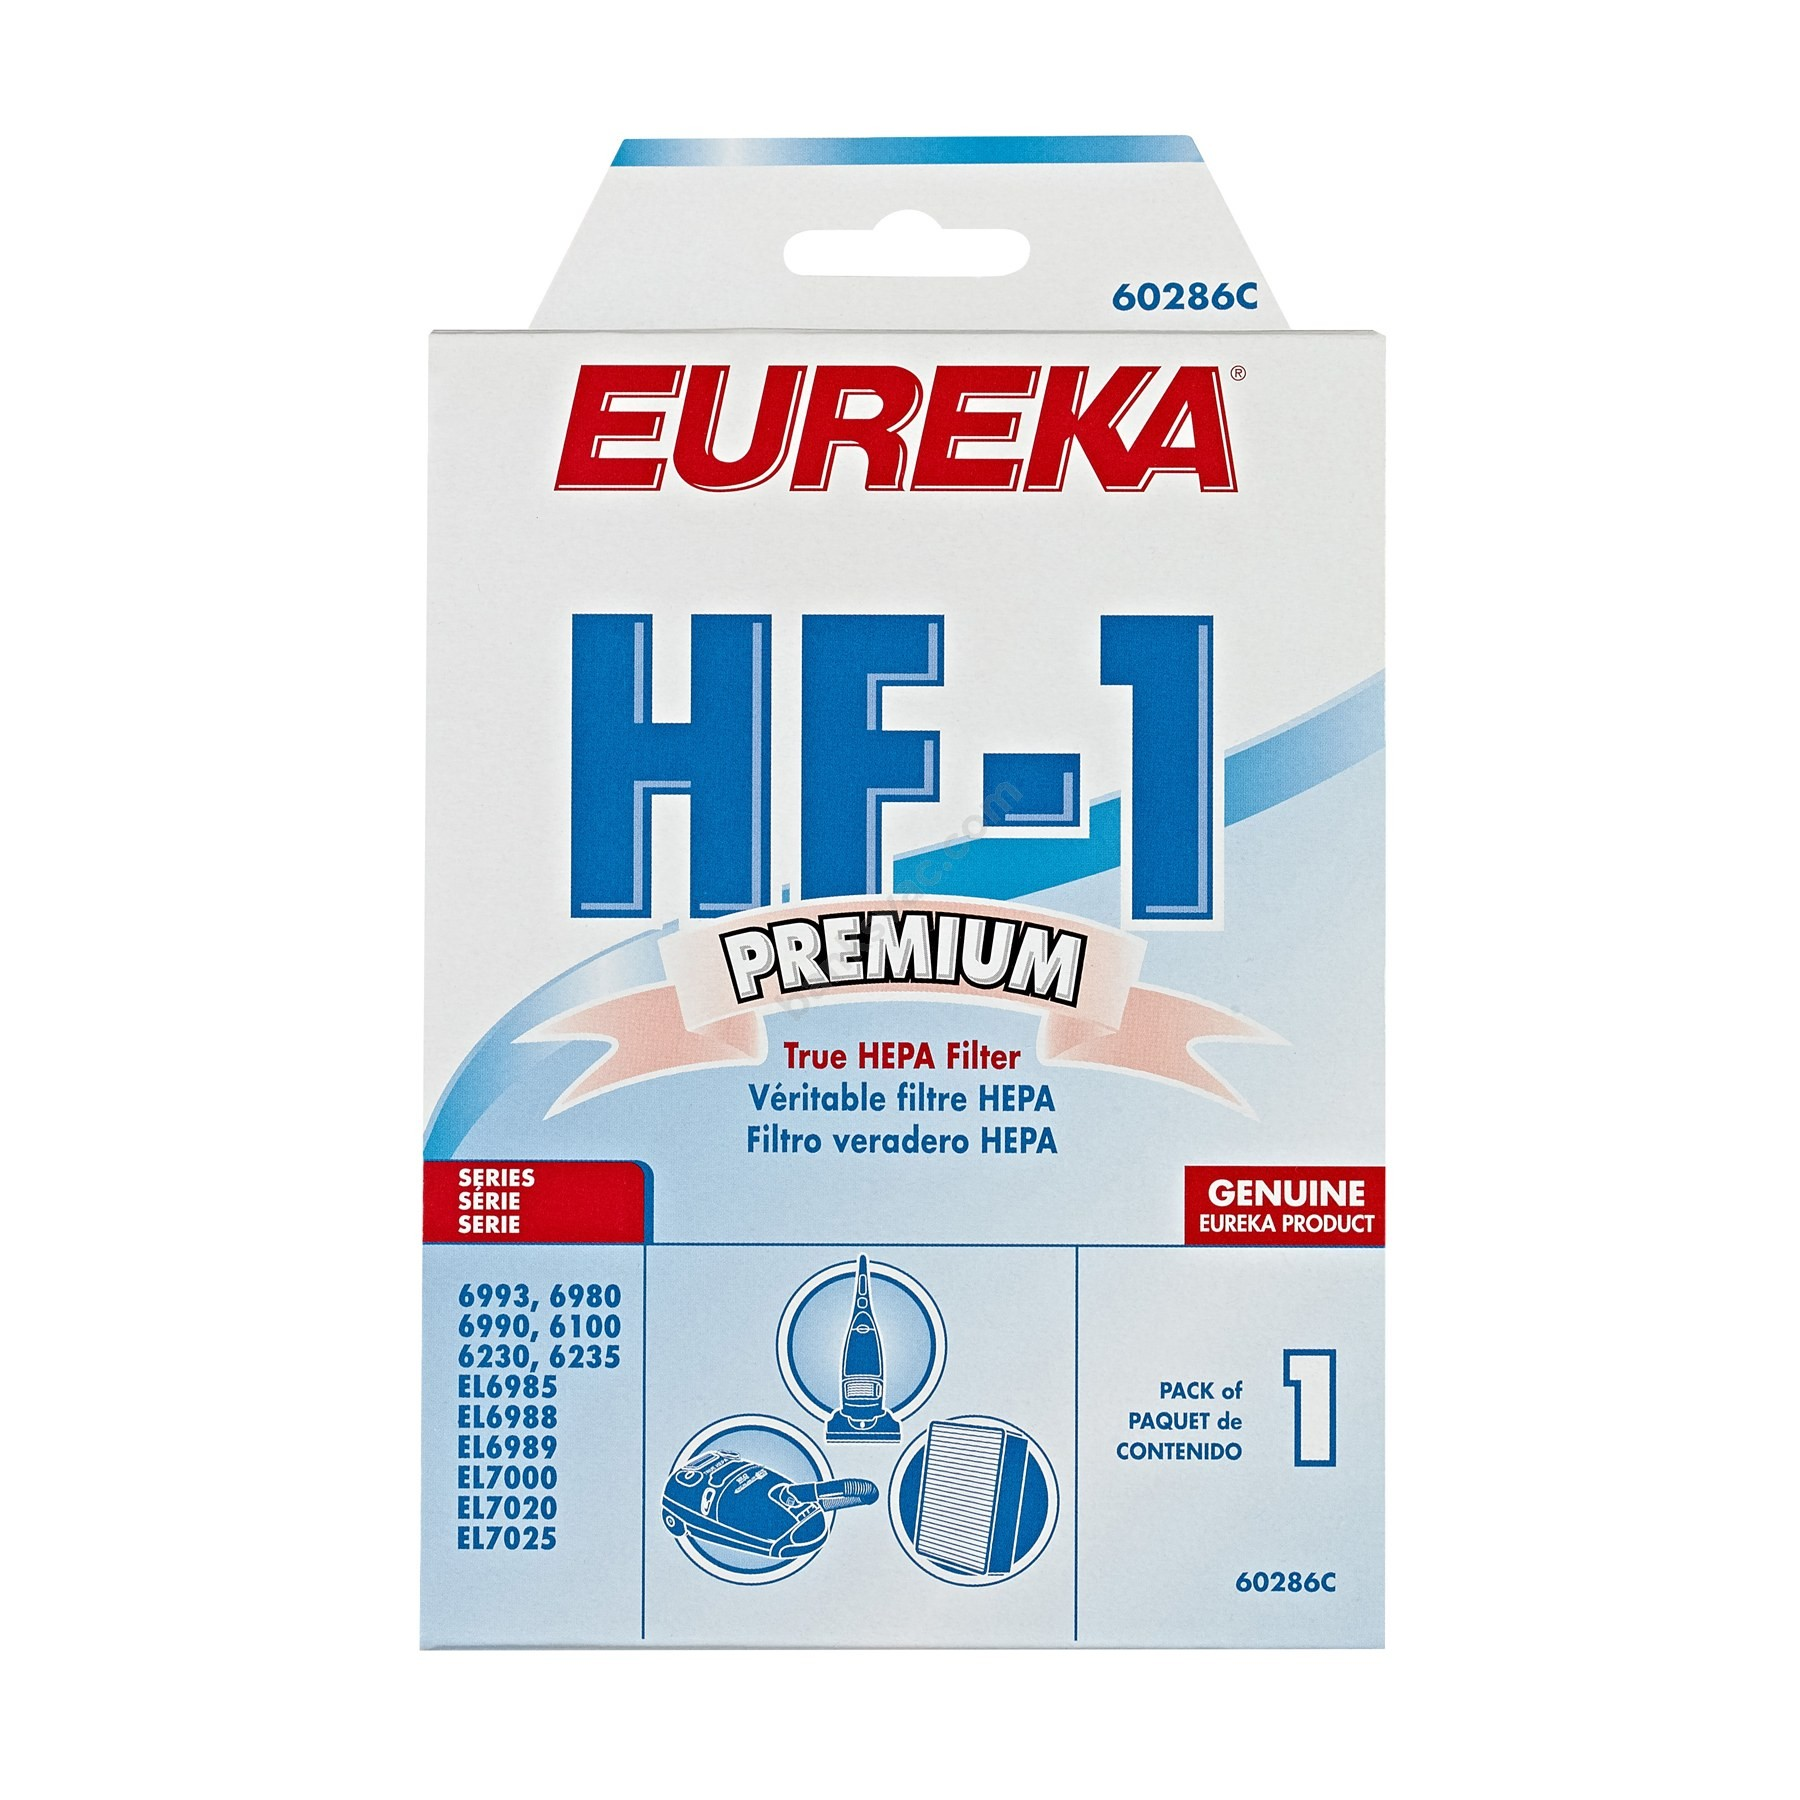 Genuine Eureka HF-1 Filter